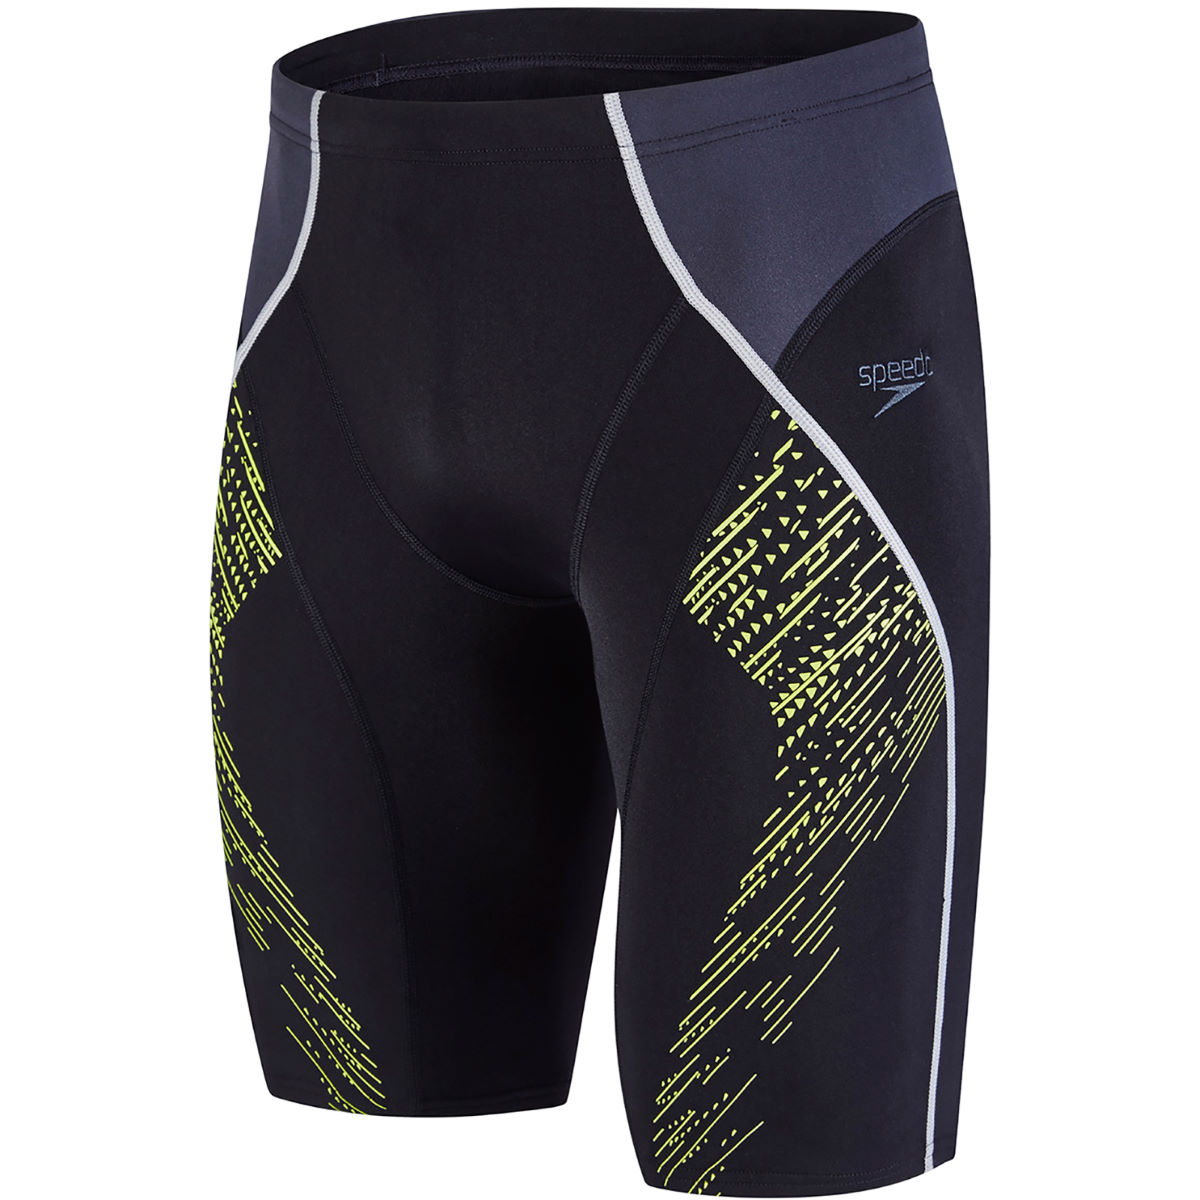 Jammer Speedo Fit Panel - 34 Black/Oxid Grey/Lime